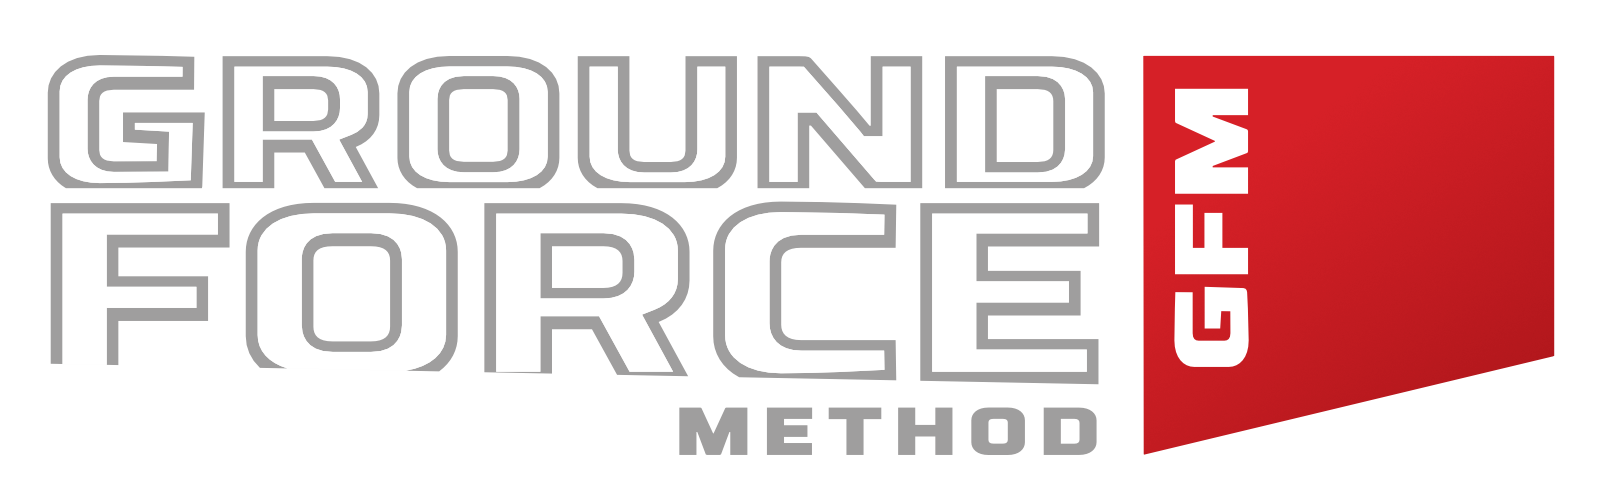 DEV: groundforcemethod.hu